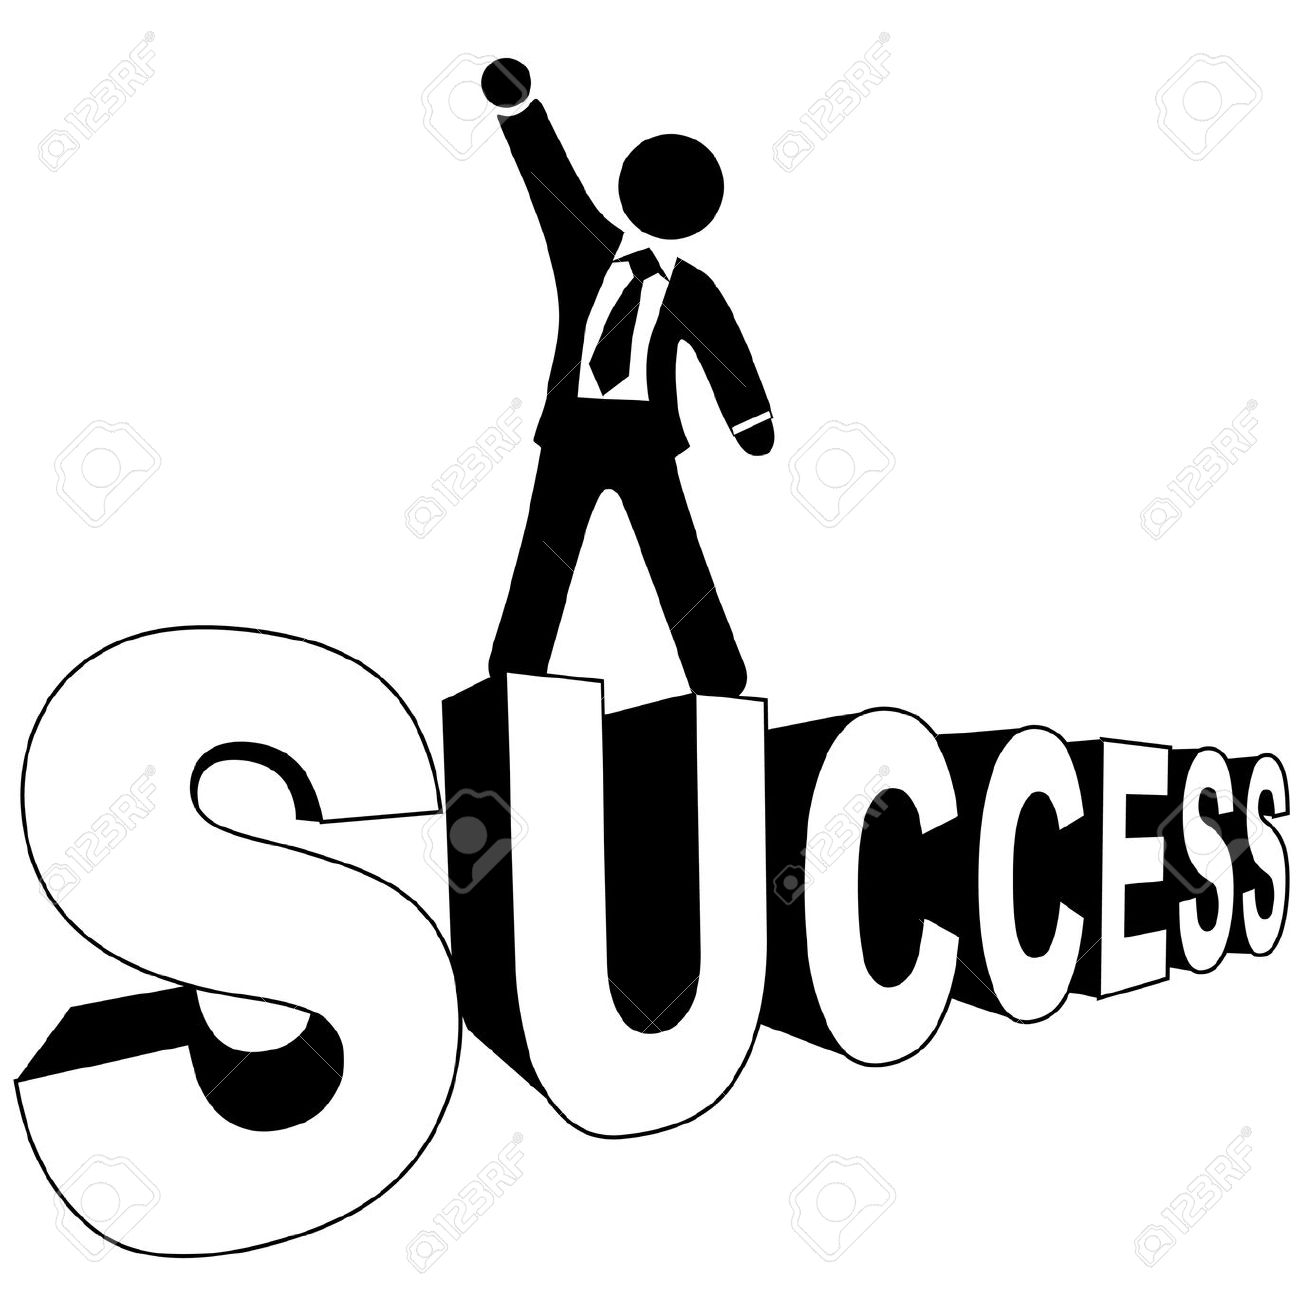 Success images png Transparent pictures on F.